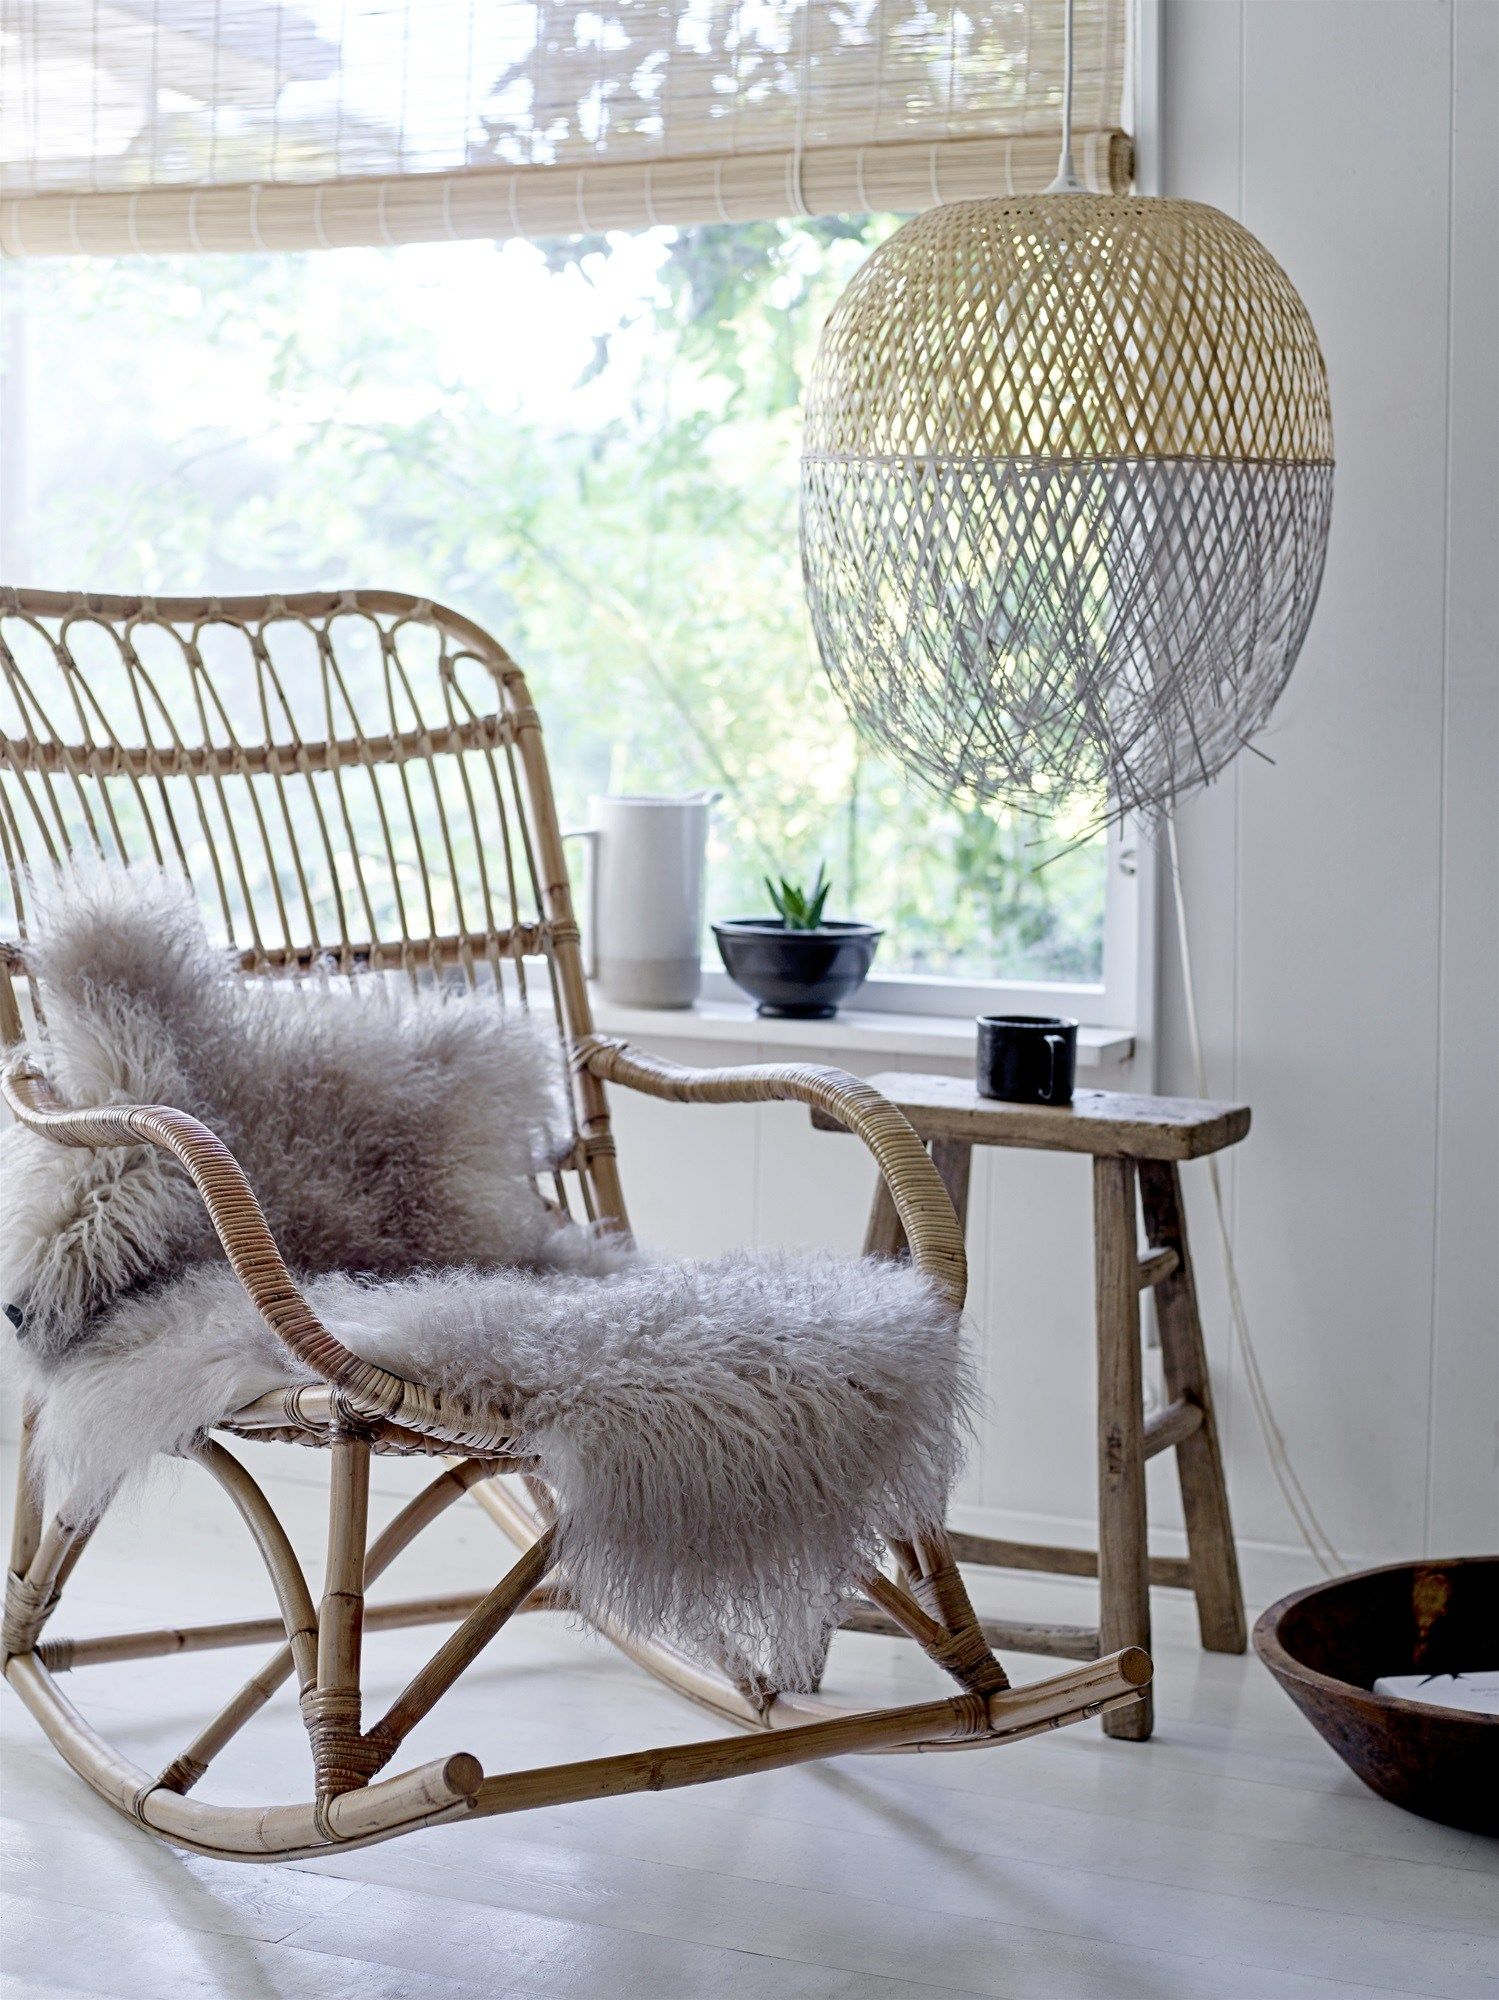 As Seen In January Rattan rocking chair, Rocking chair